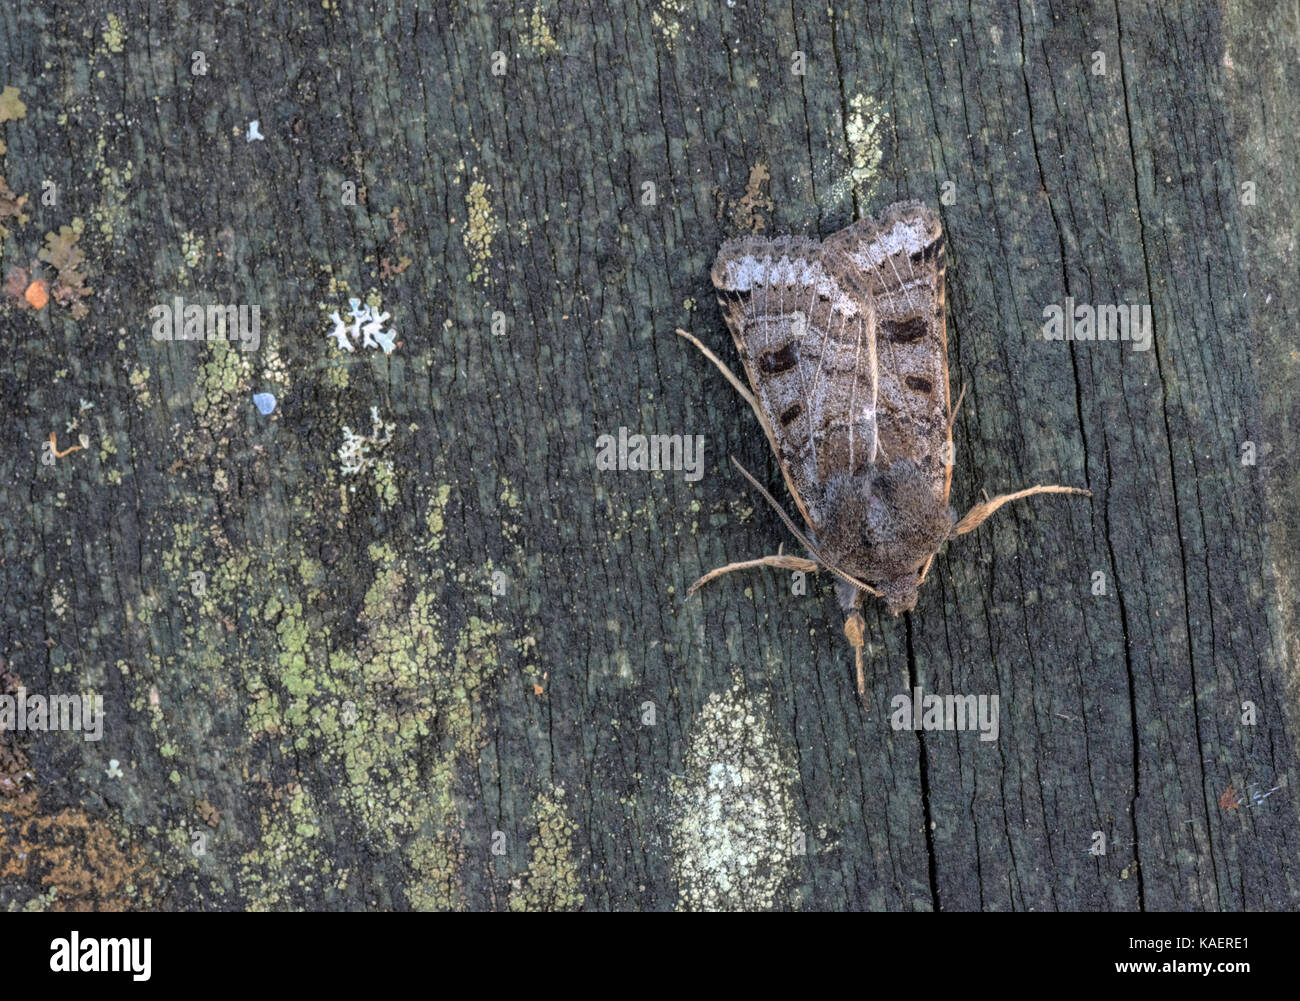 Lunar Underwing moth species resting on wood. Stock Photo